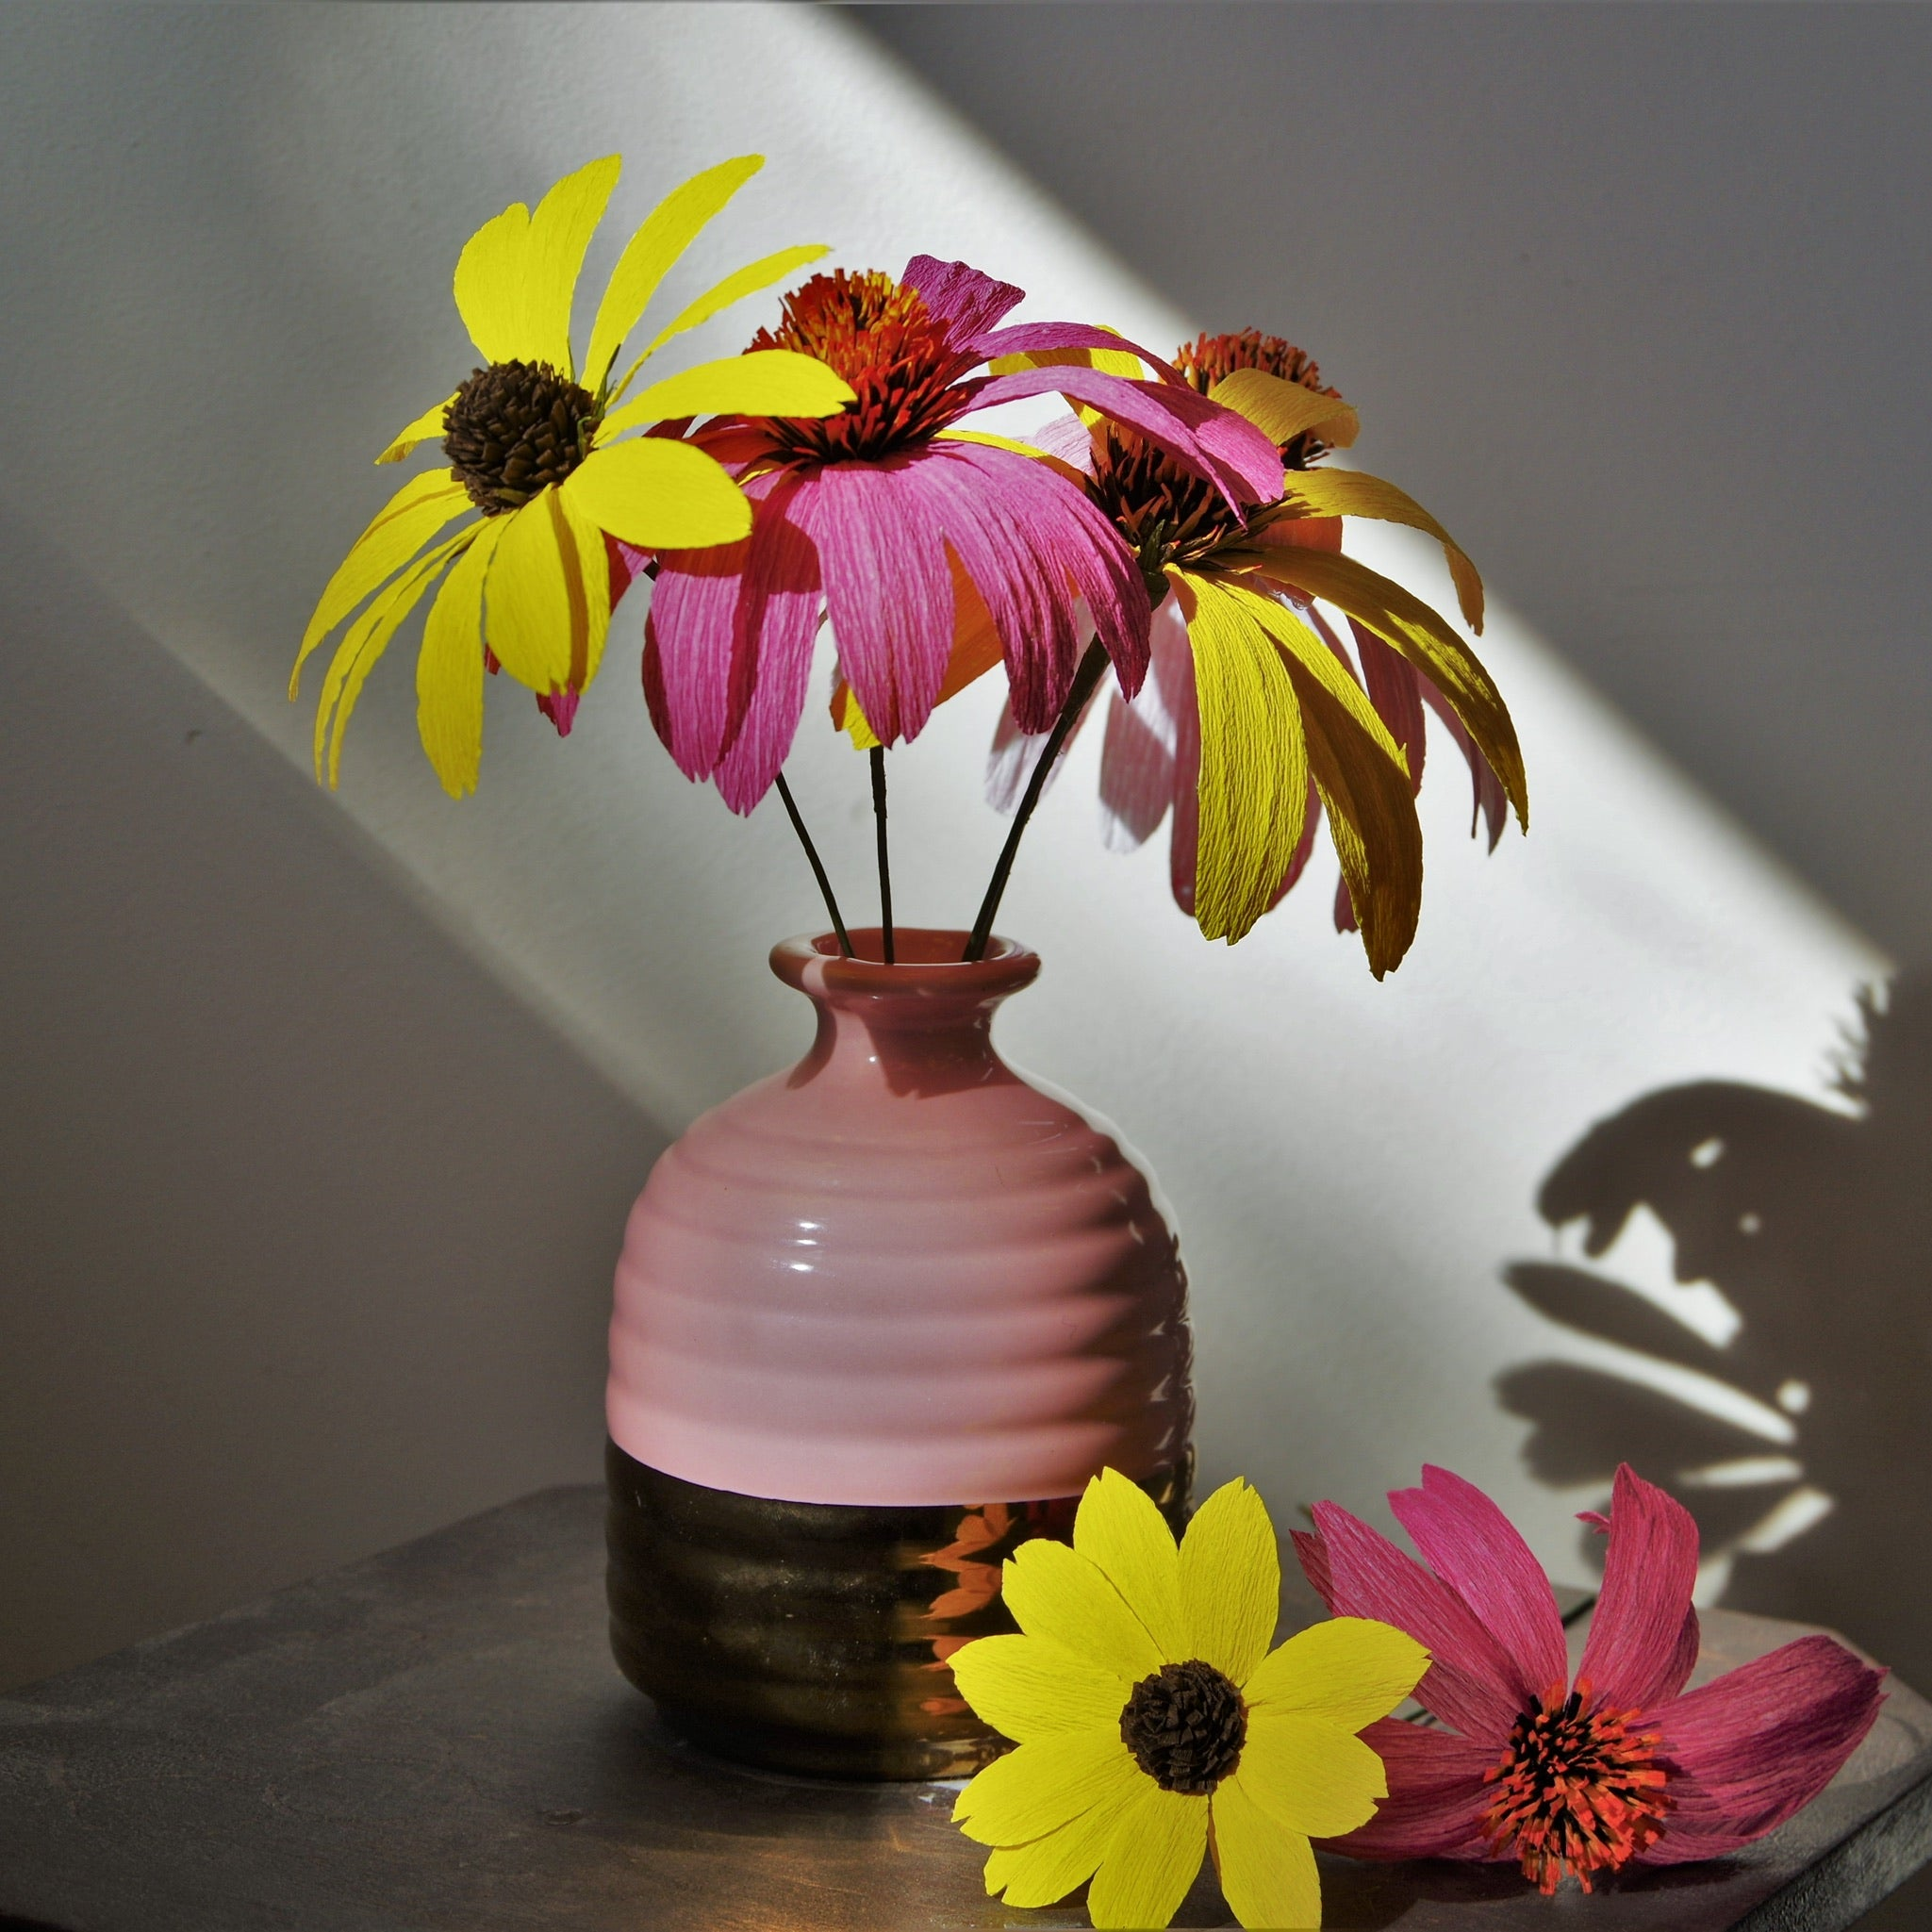 Paper Coneflower & Black-Eyed Susan - In Studio Workshop